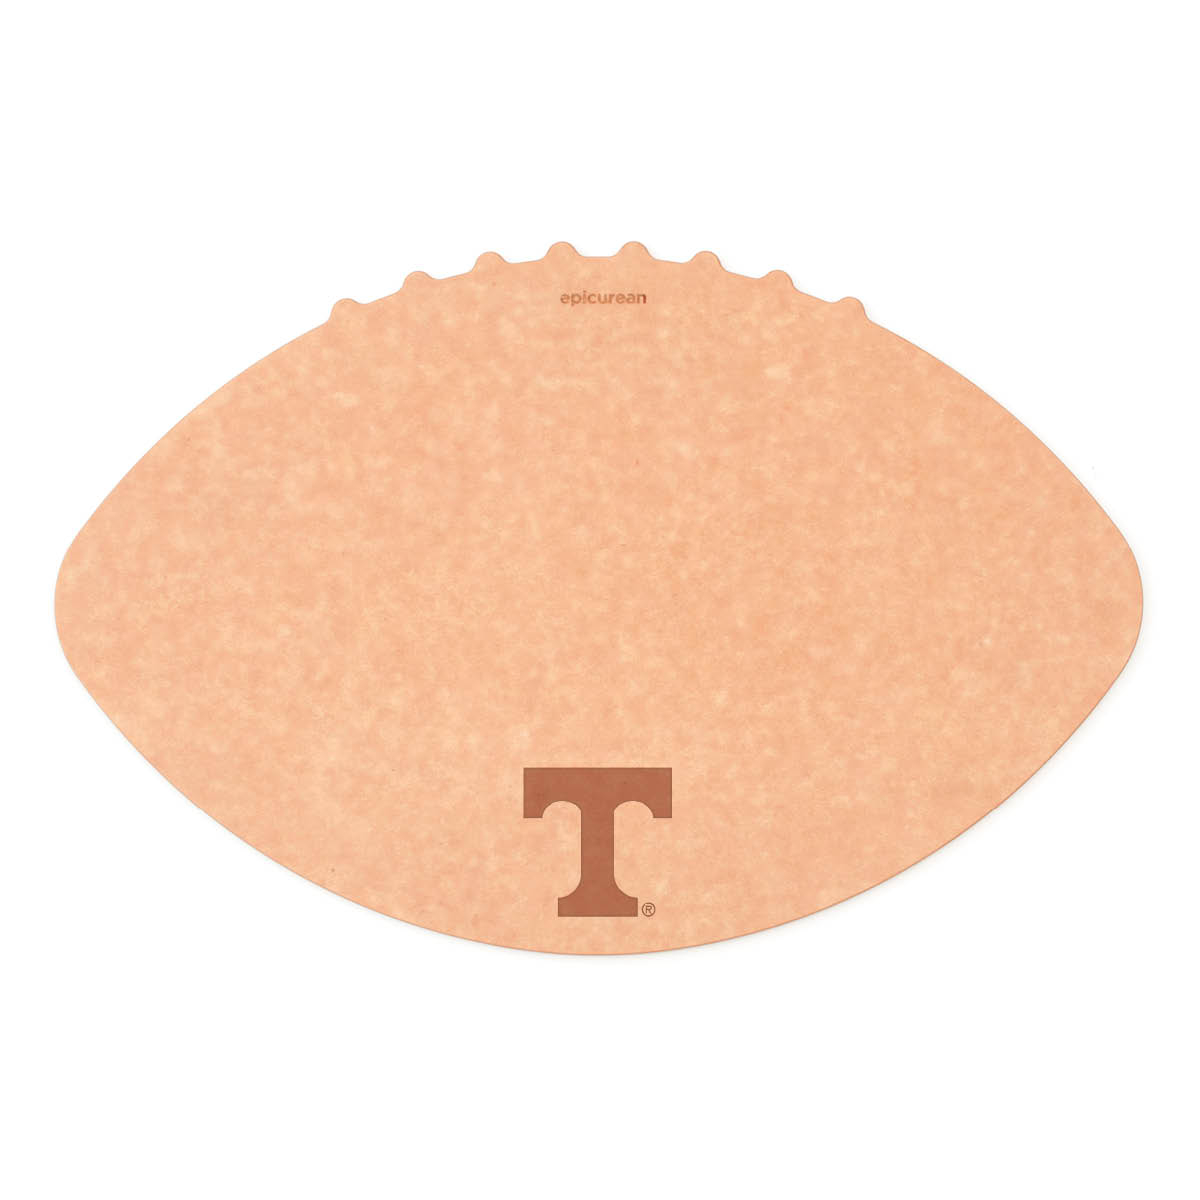 Epicurean University of Tennessee 16 x 10.5 Inch Football Cutting and Serving Board